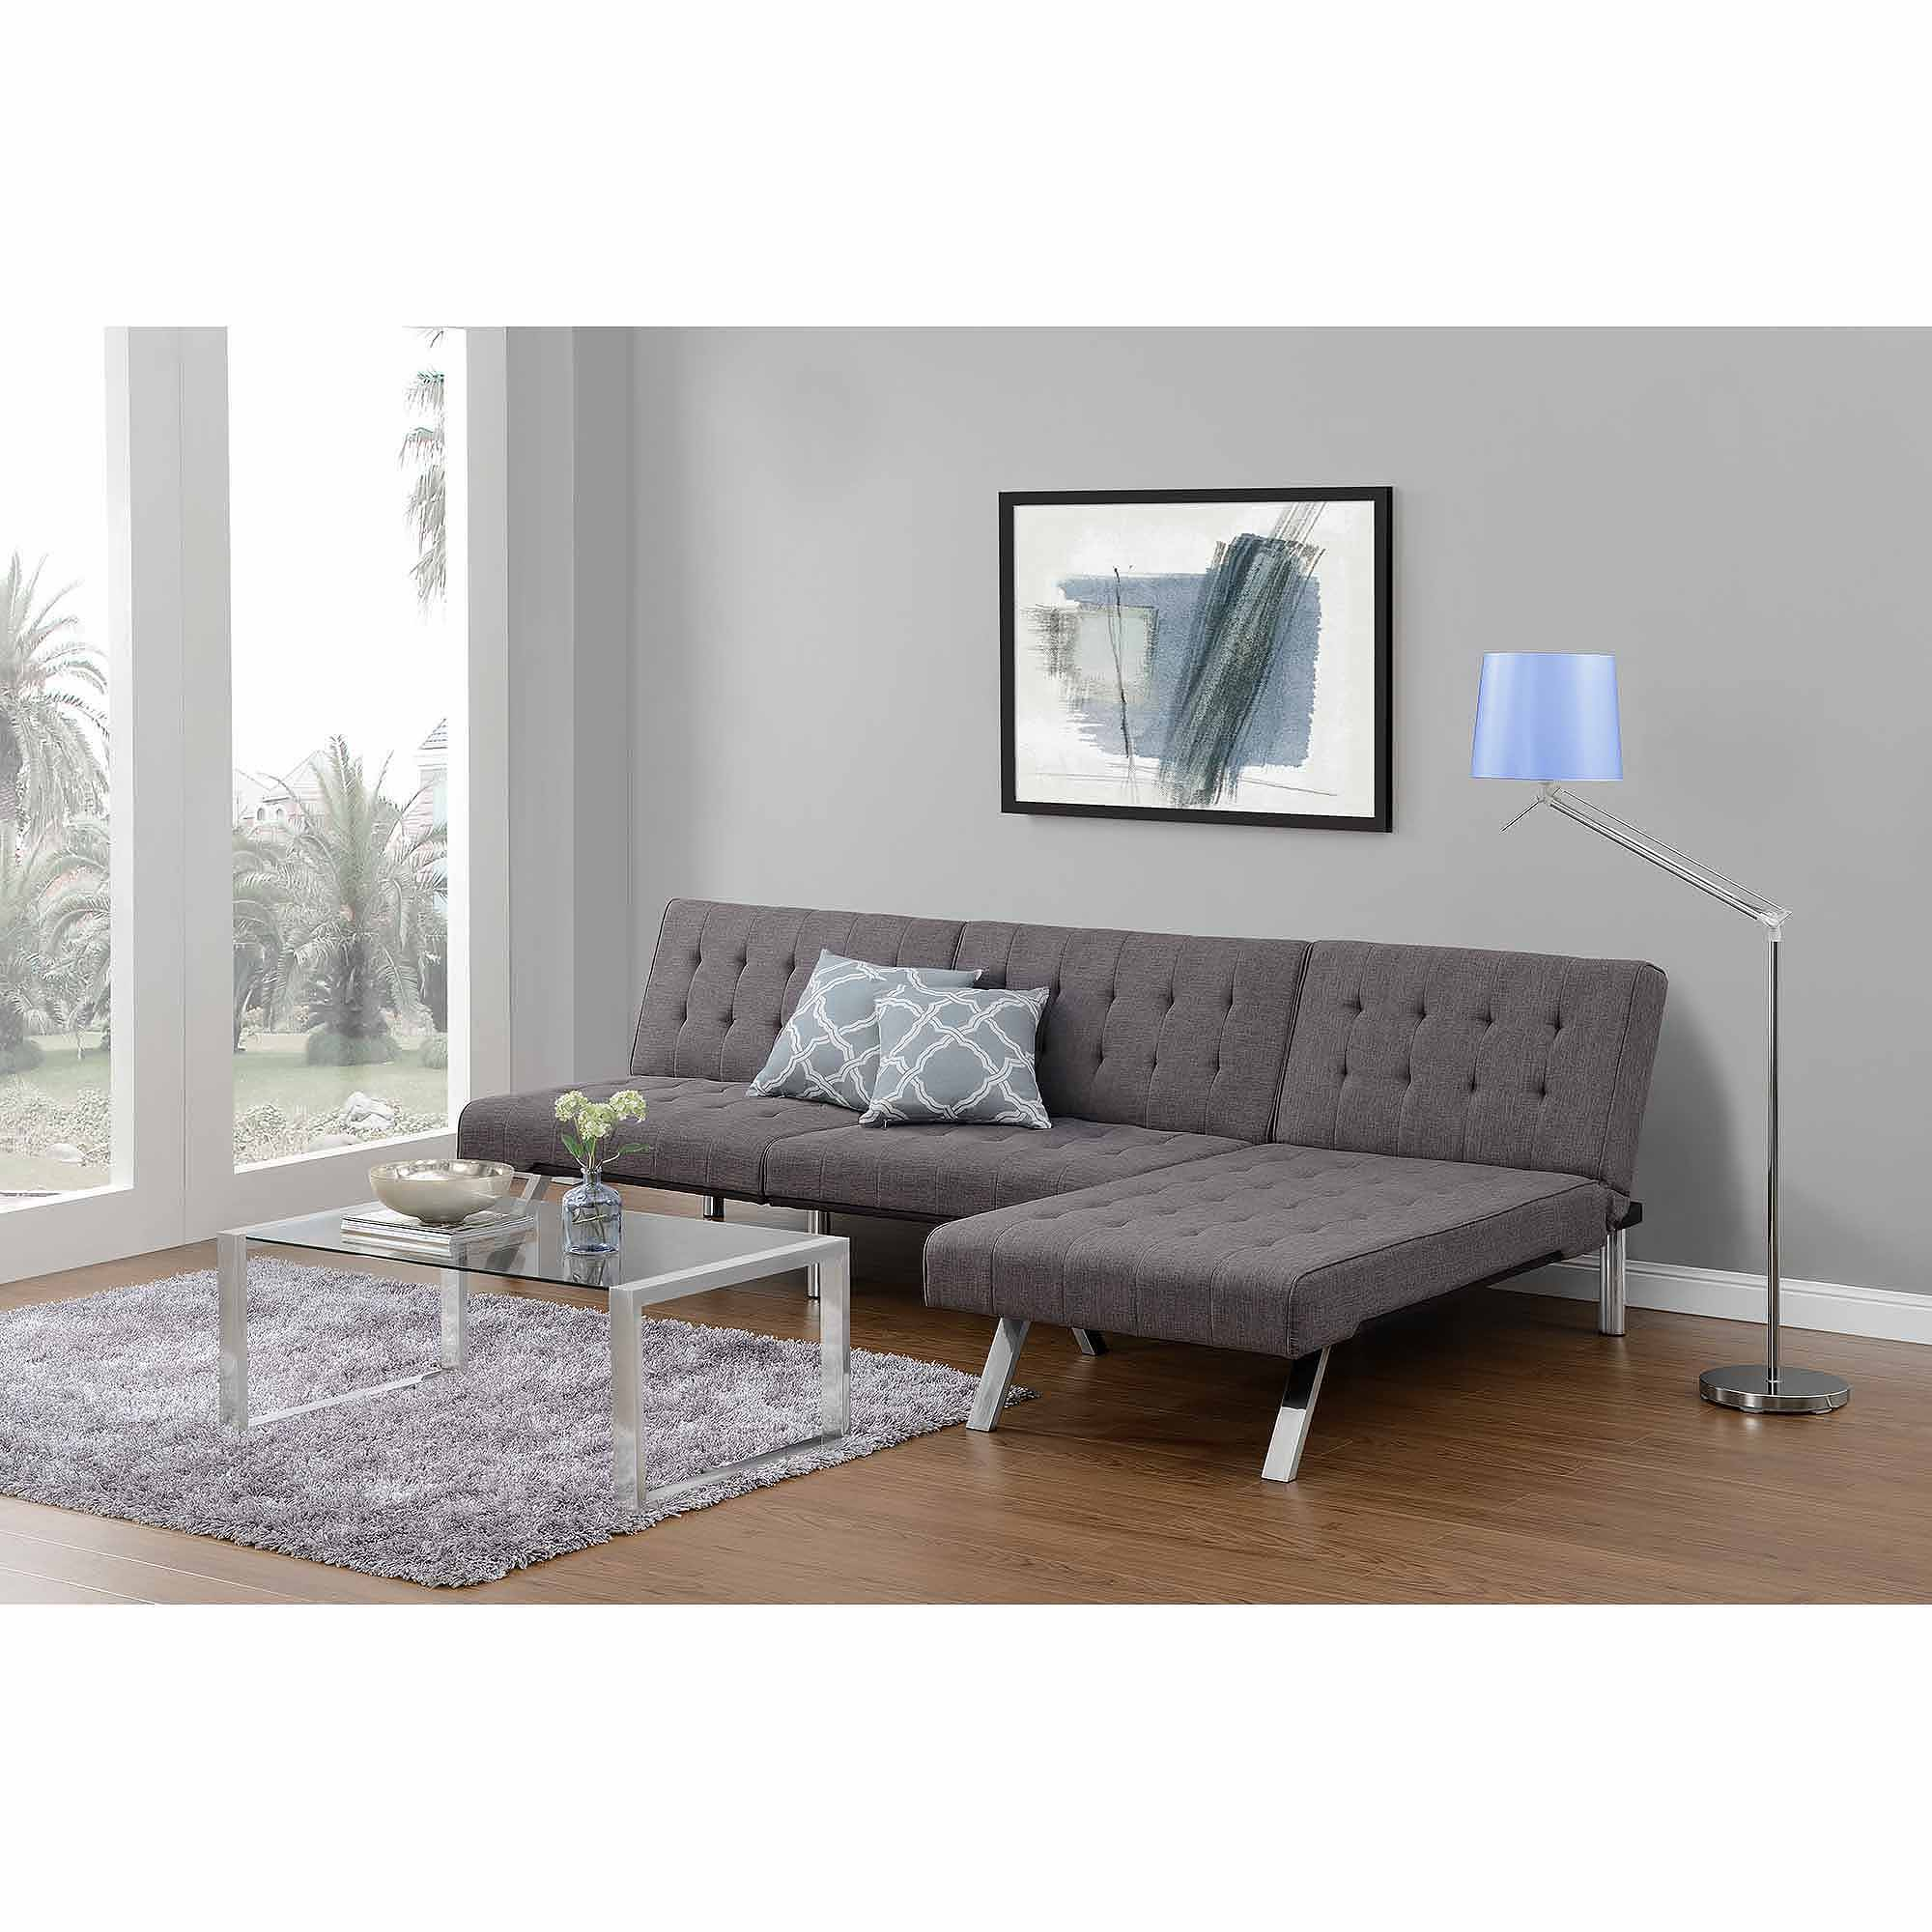 Dhp Emily Convertible Futon Sofa Couch Multiple Finishes Walmart Com